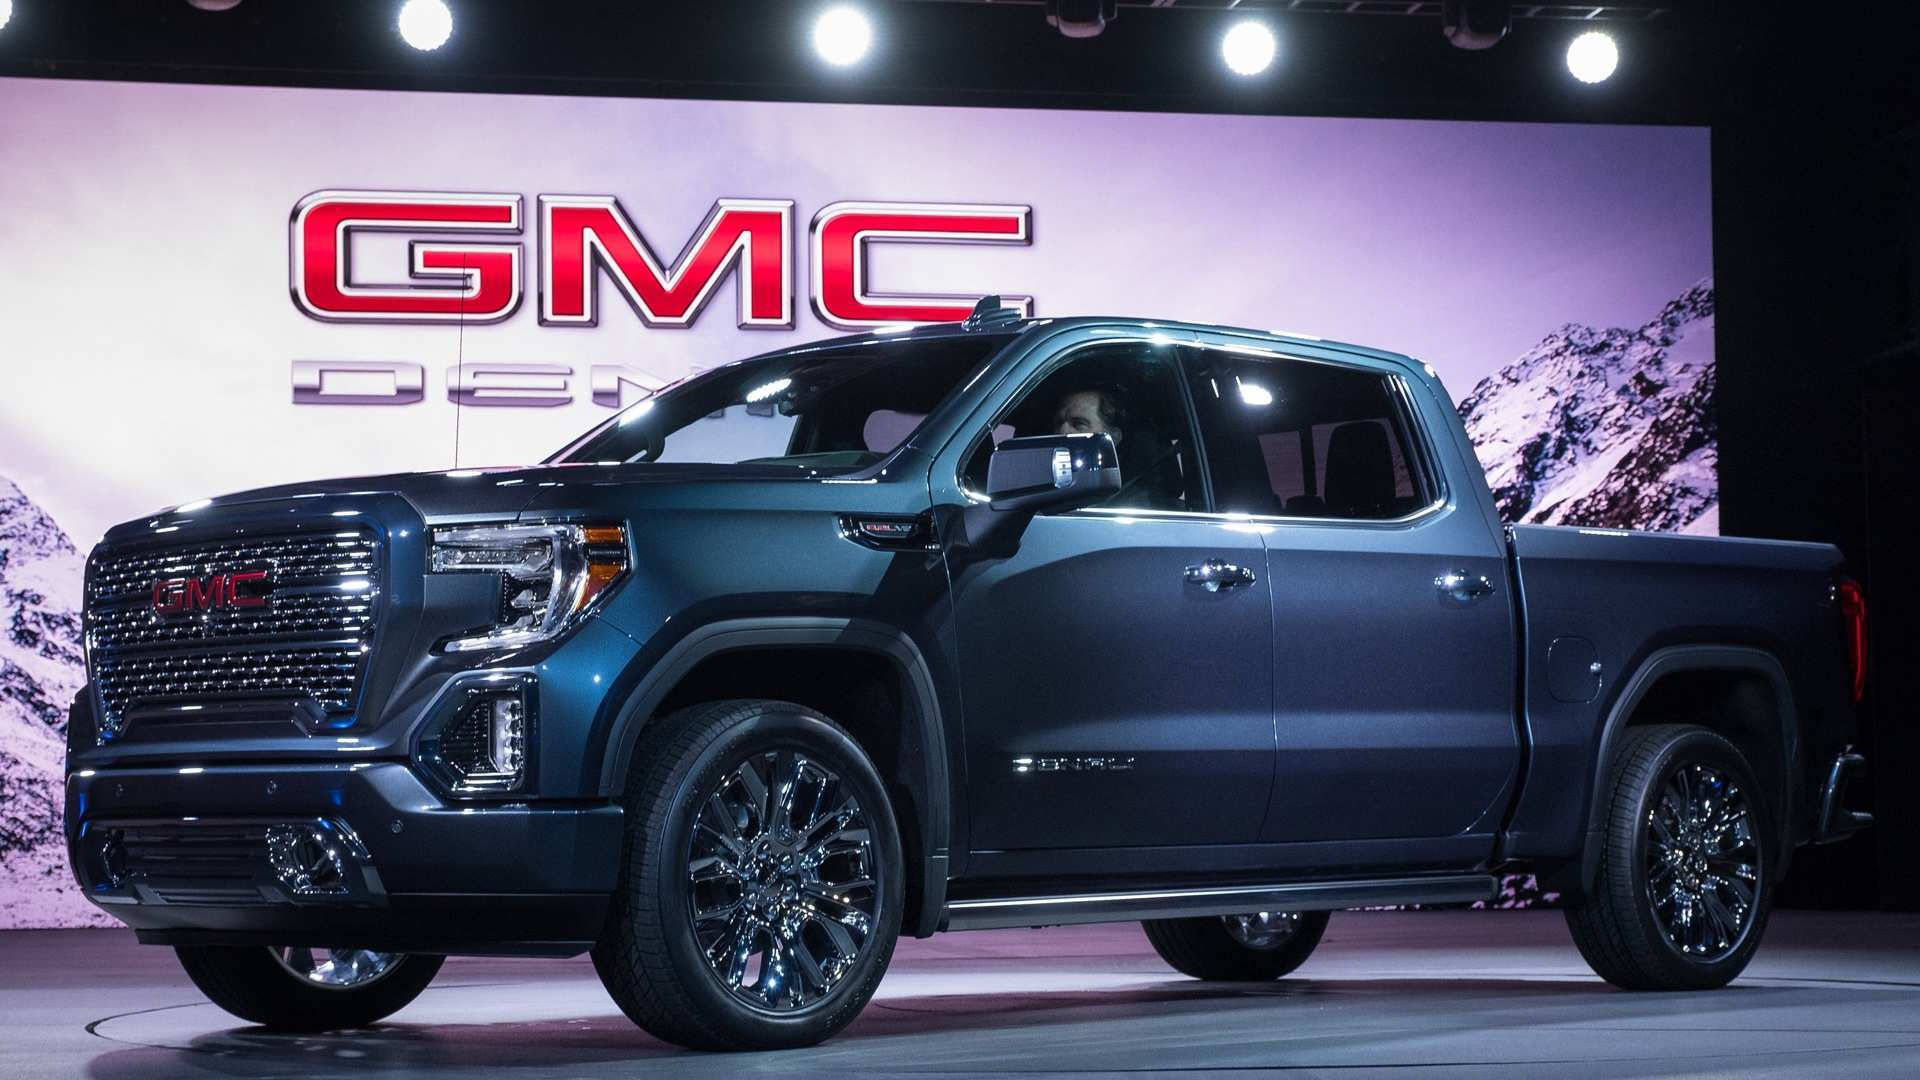 21 All New 2020 Gmc Pickup Images